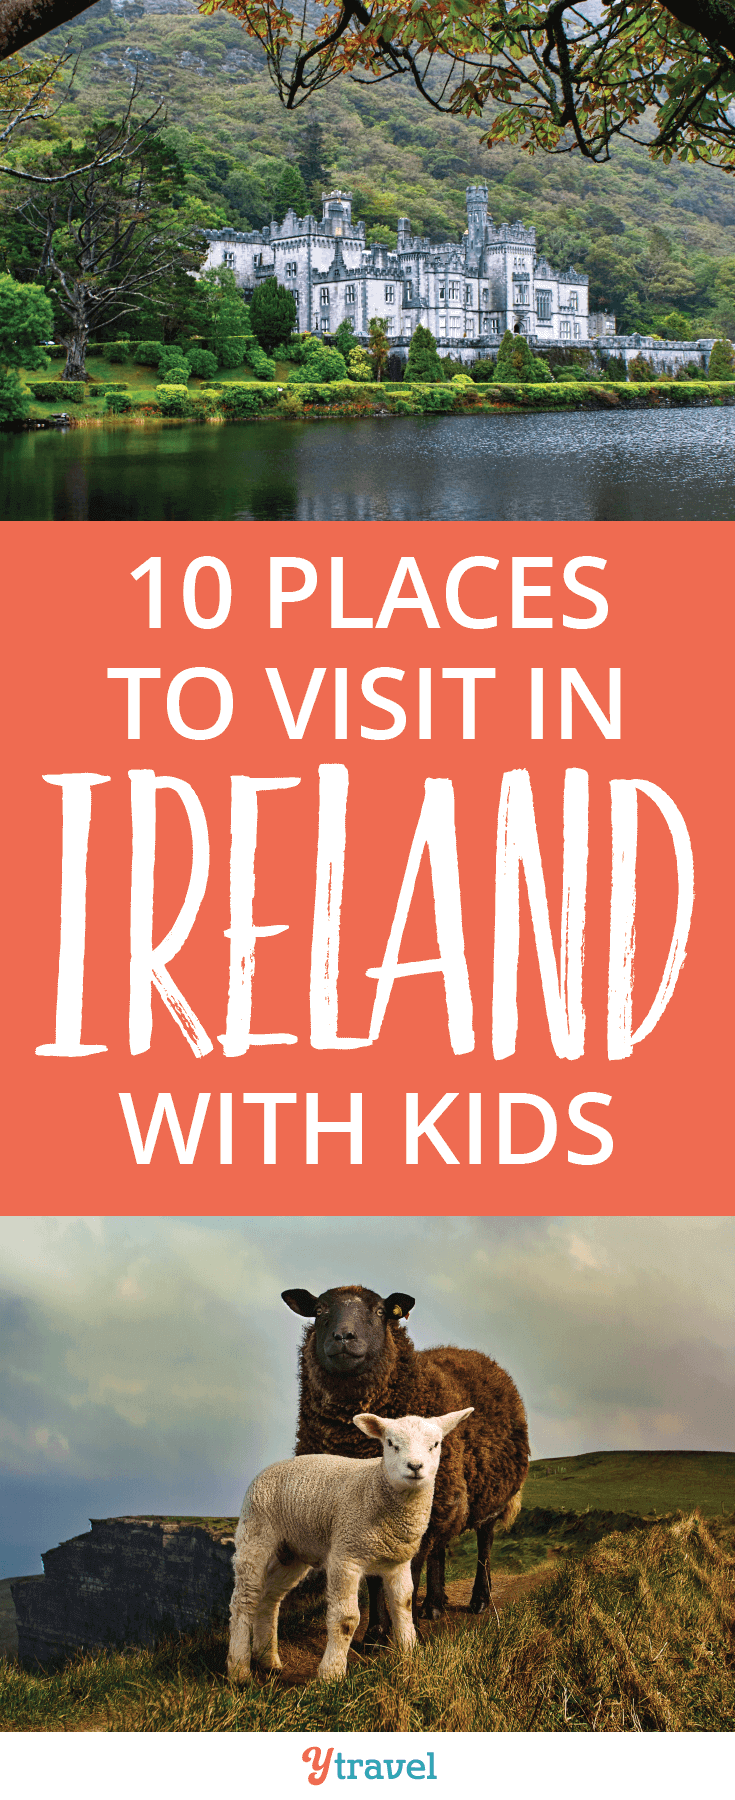 Check out these awesome places to visit in Ireland with kids! Ireland is a great destination for family travel.